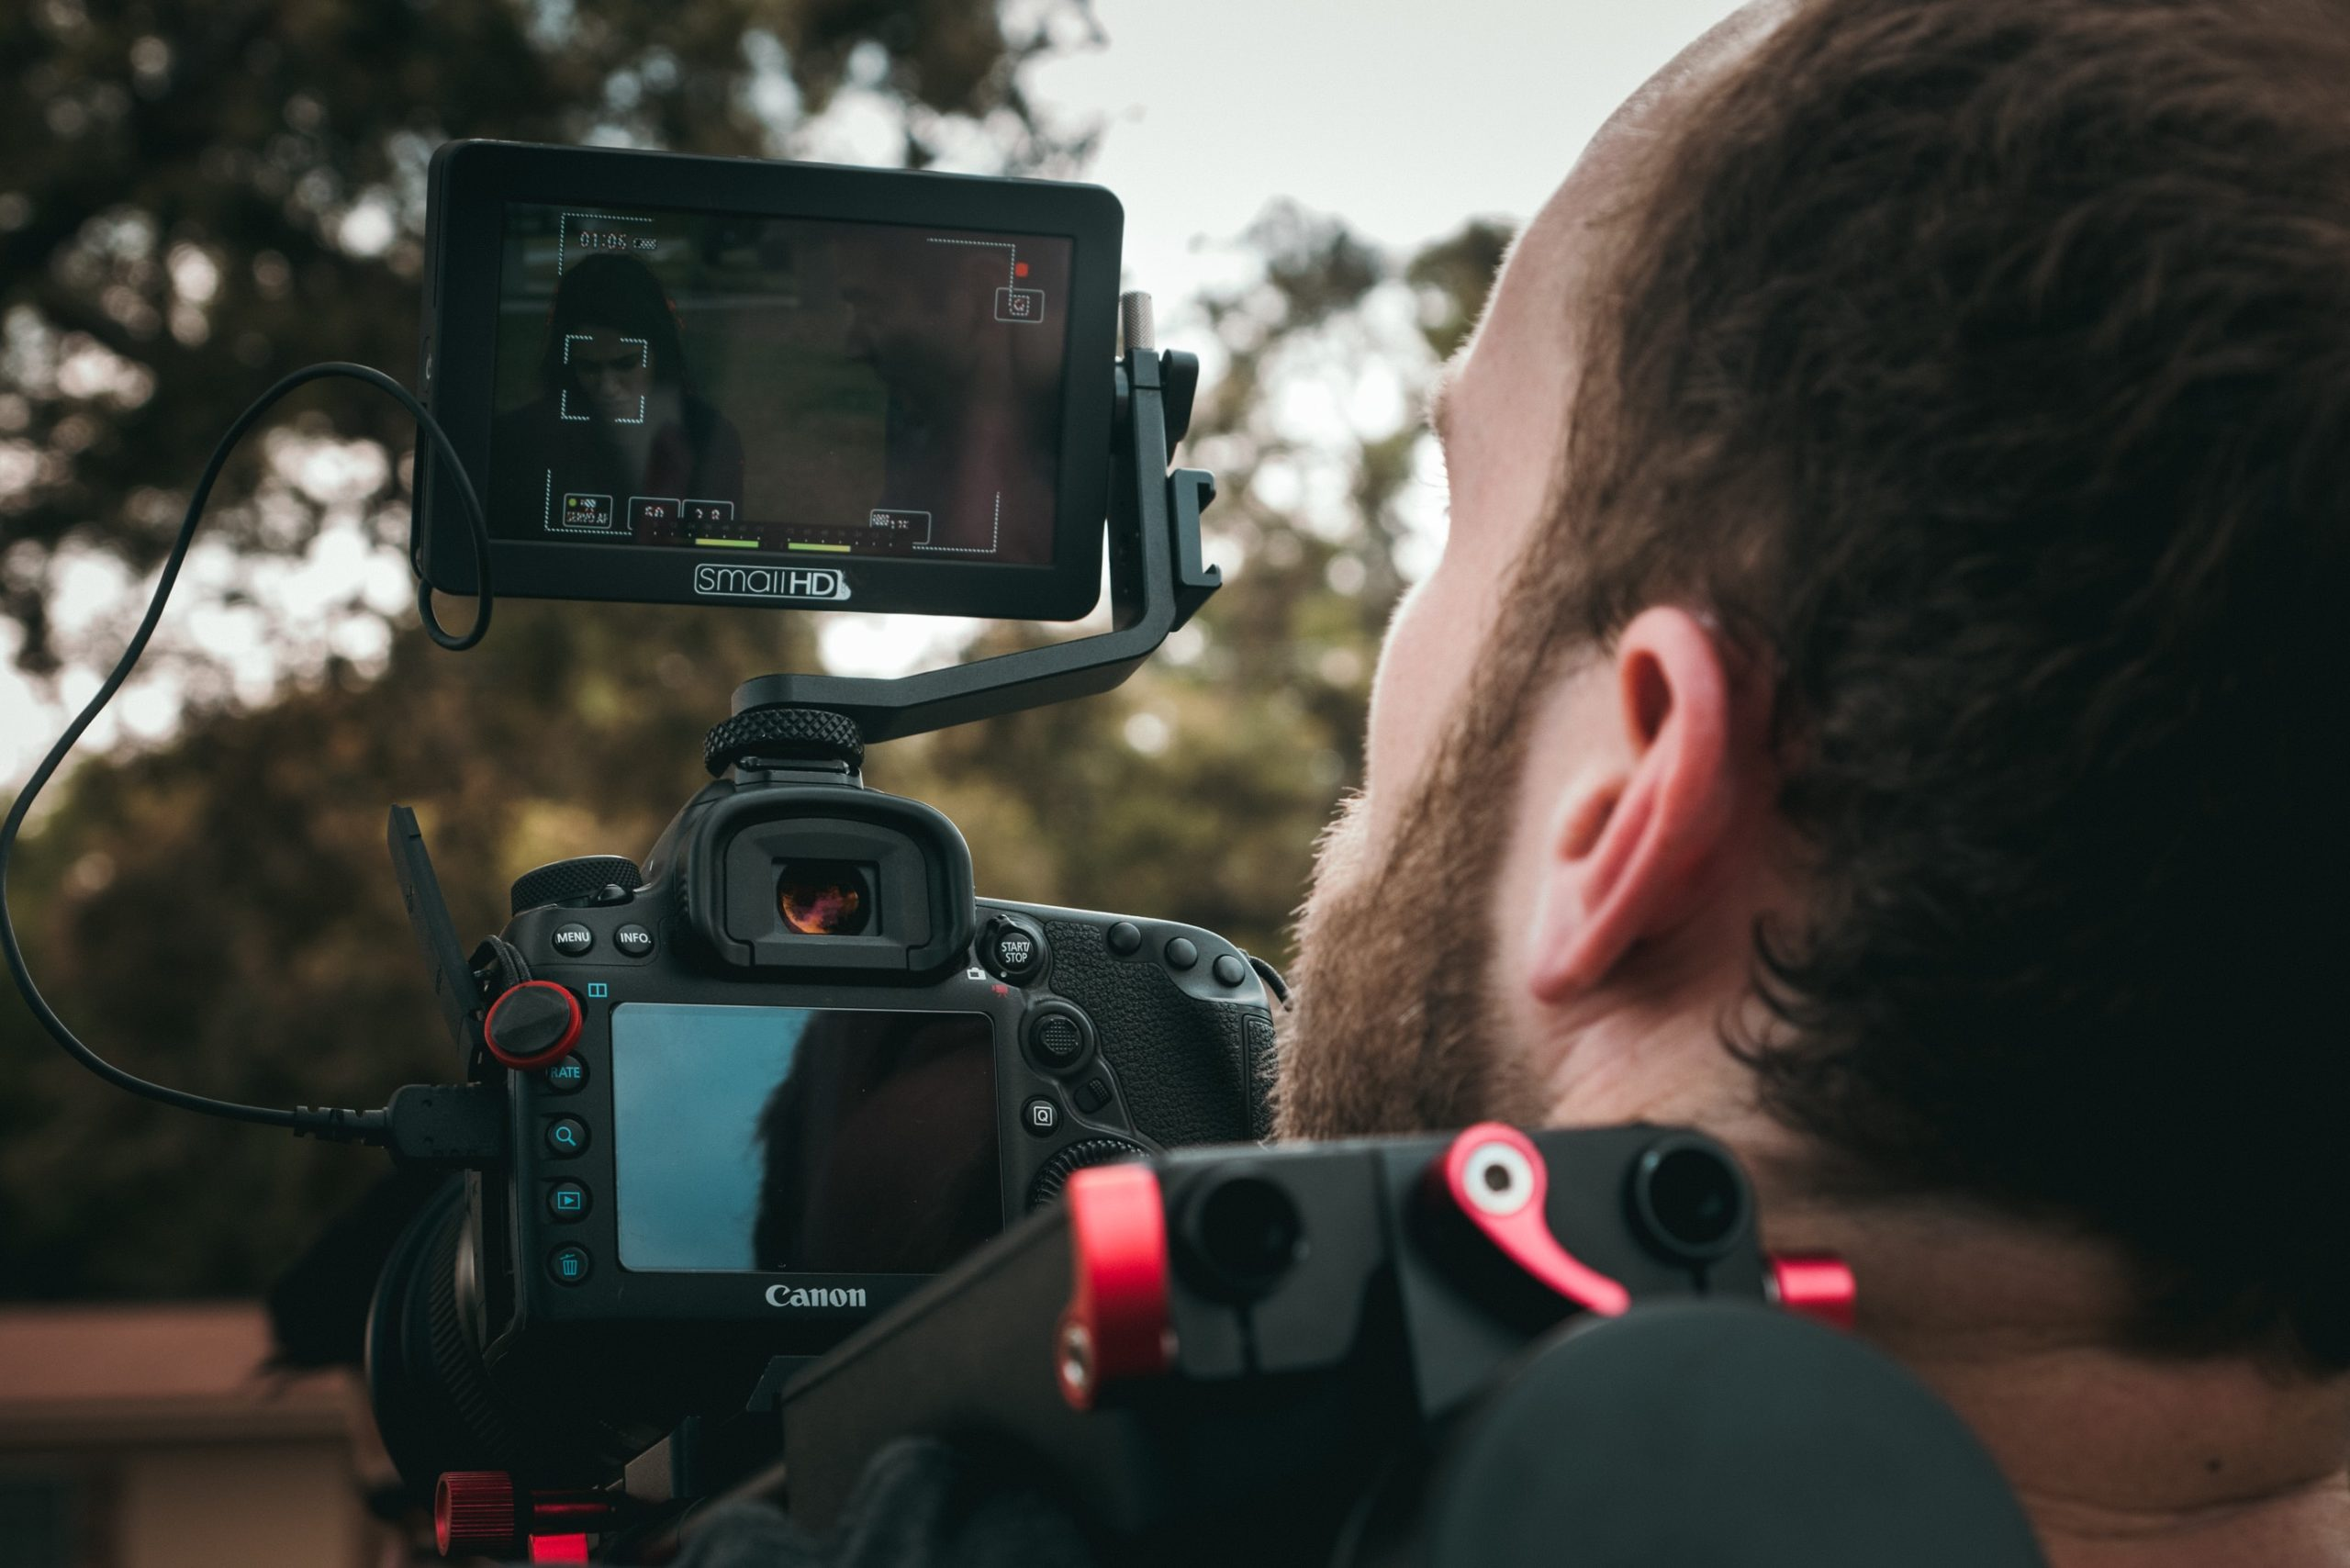 A close up of a man holding a camera